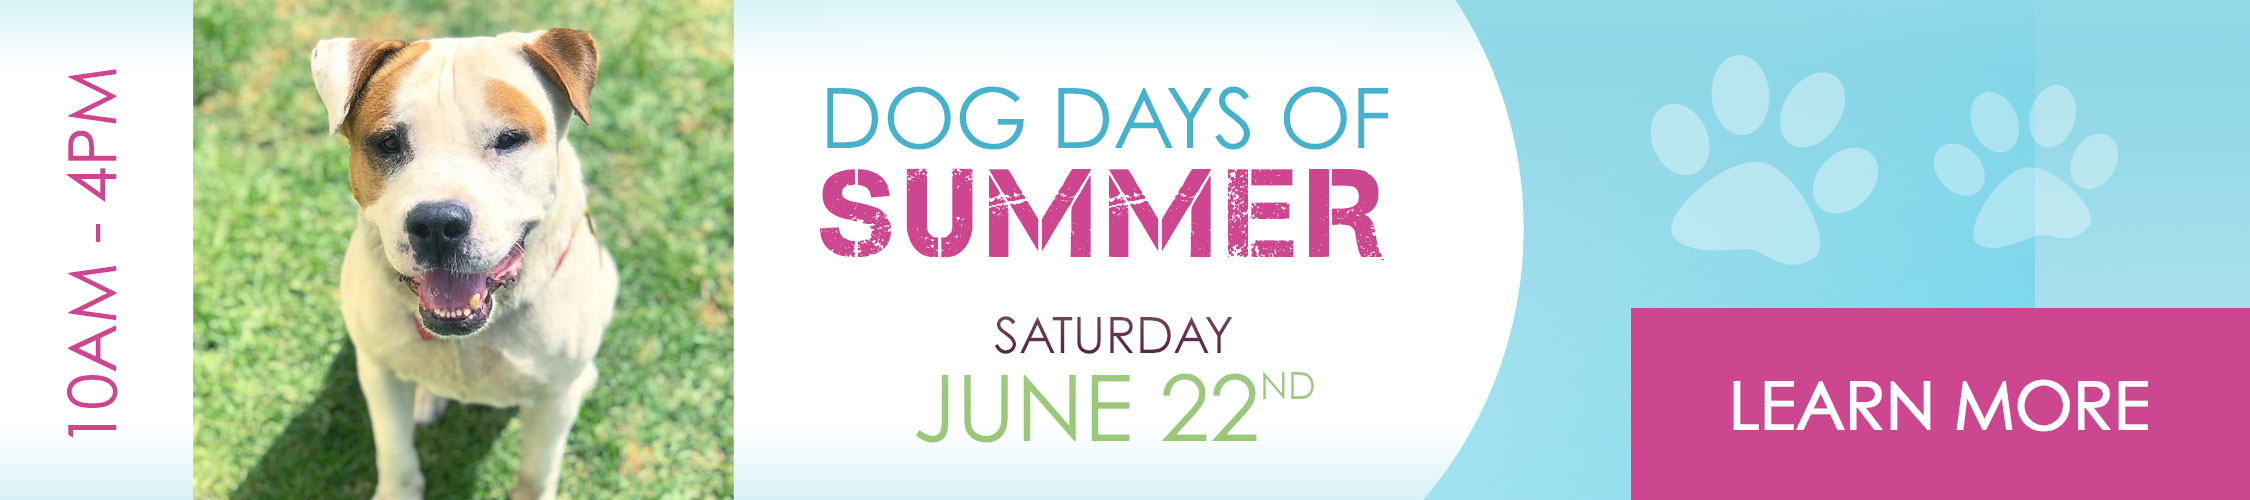 Dog Days of Summer Saturday June 22nd